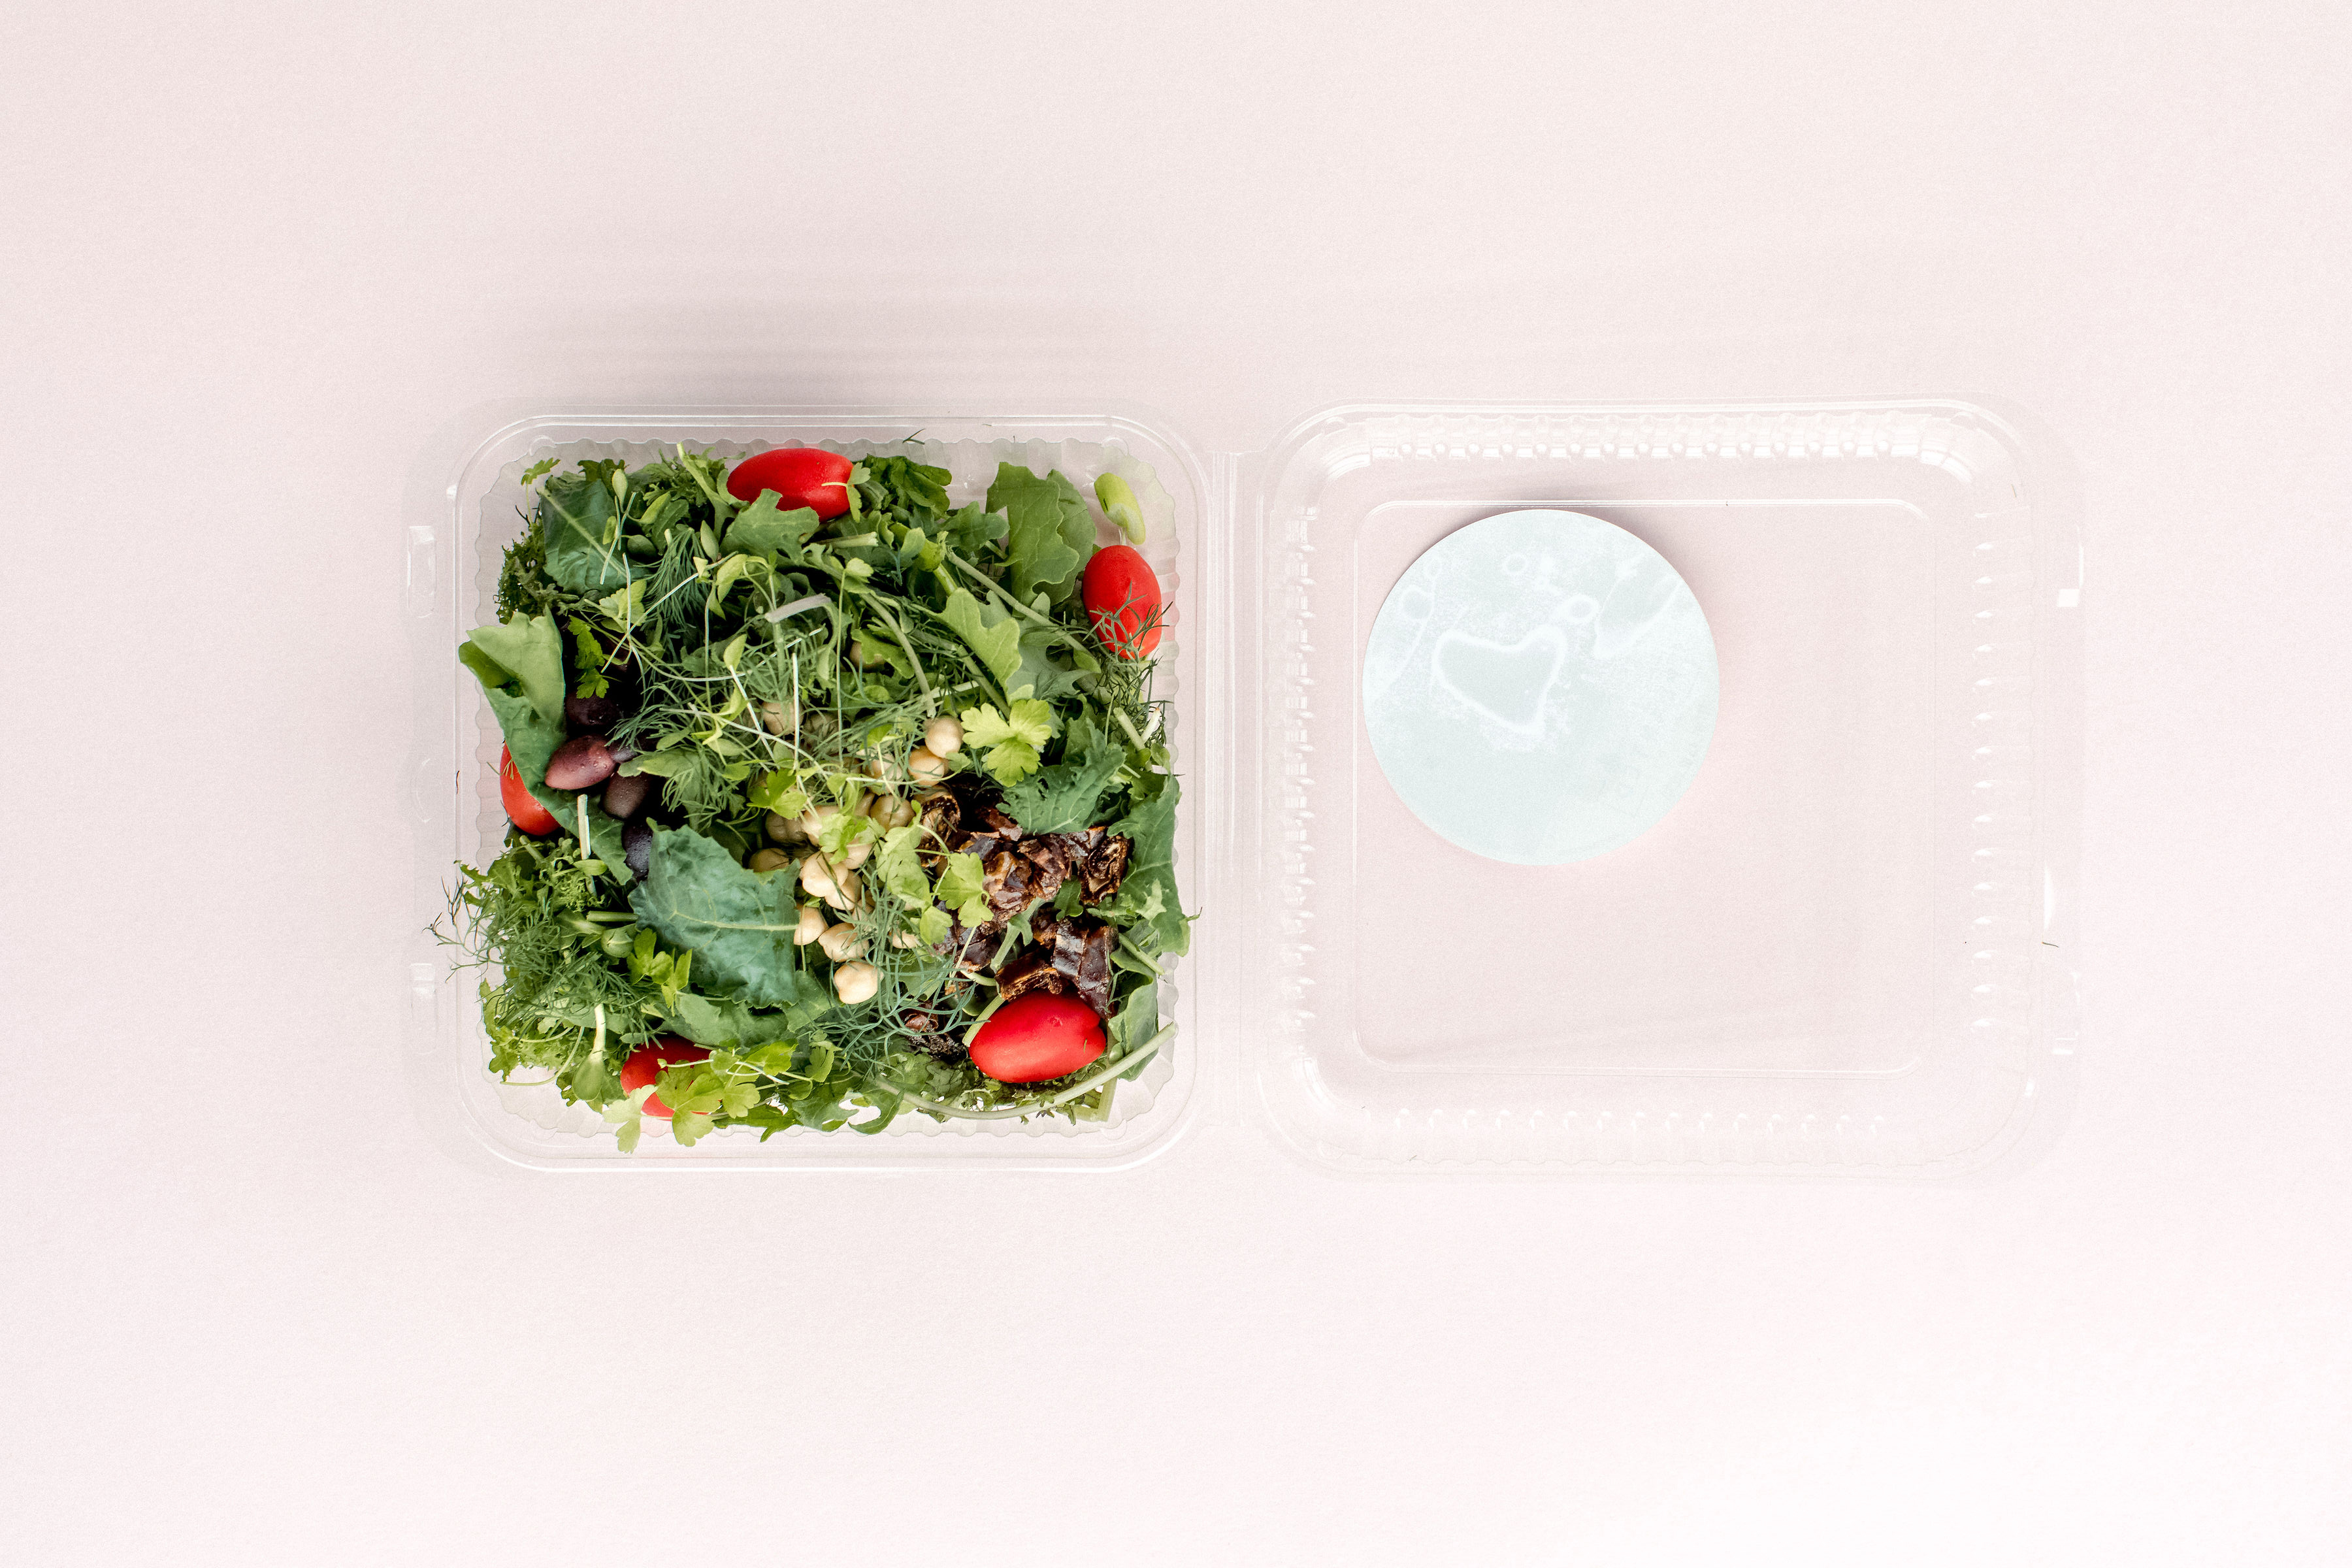 The Moroccan salad from Planted Detroit sits in a plastic container on a light pink background. It has tomatoes, greens, olives, and chickpeas.